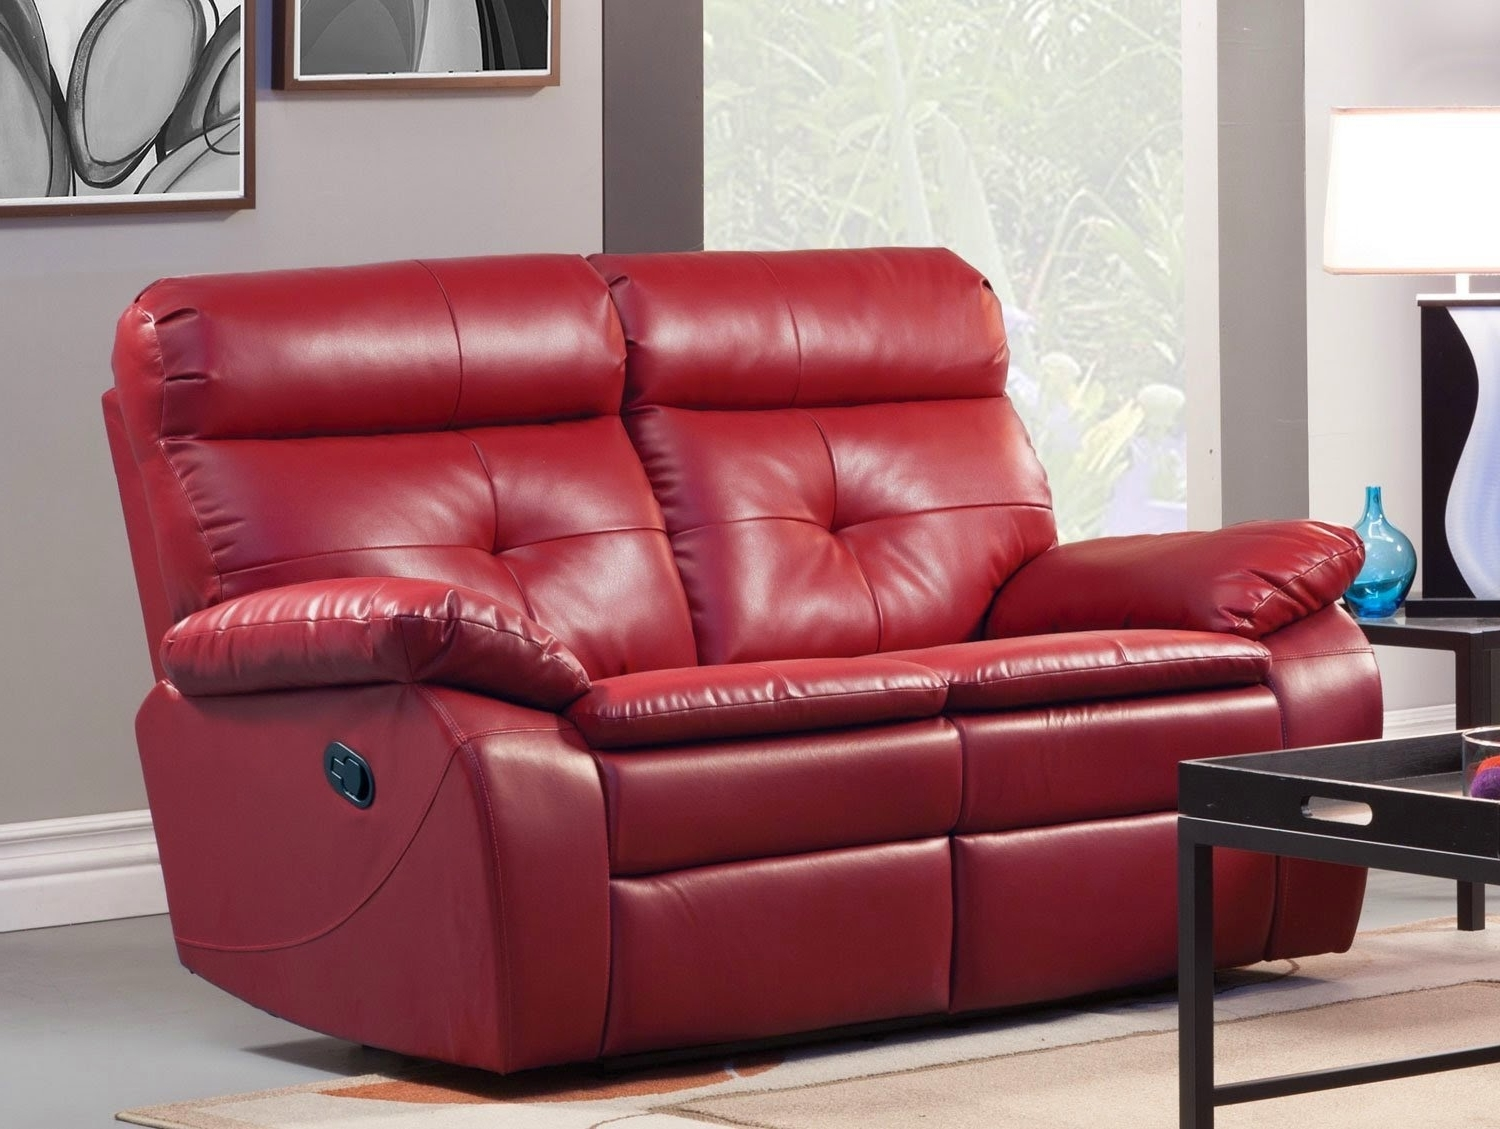 2018 2 Seater Recliner Leather Sofas With Cheap Reclining Sofas Sale: 2 Seater Leather Recliner Sofa Sale (View 7 of 20)